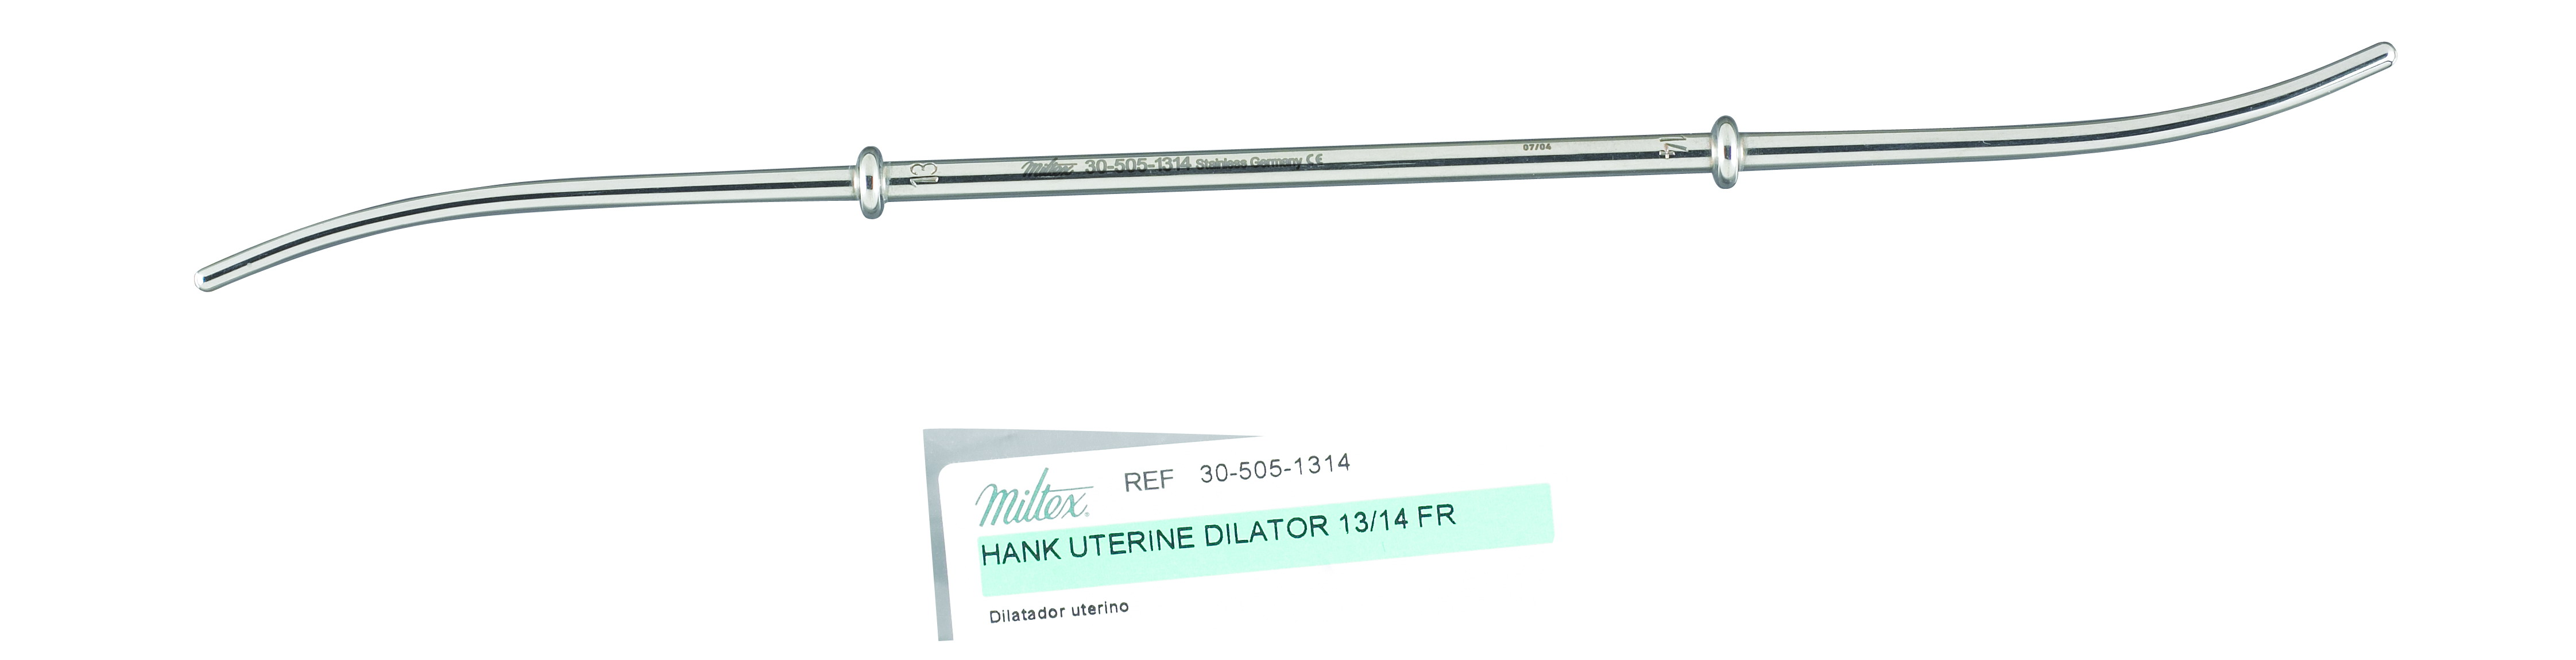 hank-uterine-dilators-10-1-2-267-cm-double-end-13-14-fr43-46-mm-30-505-1314-miltex.jpg